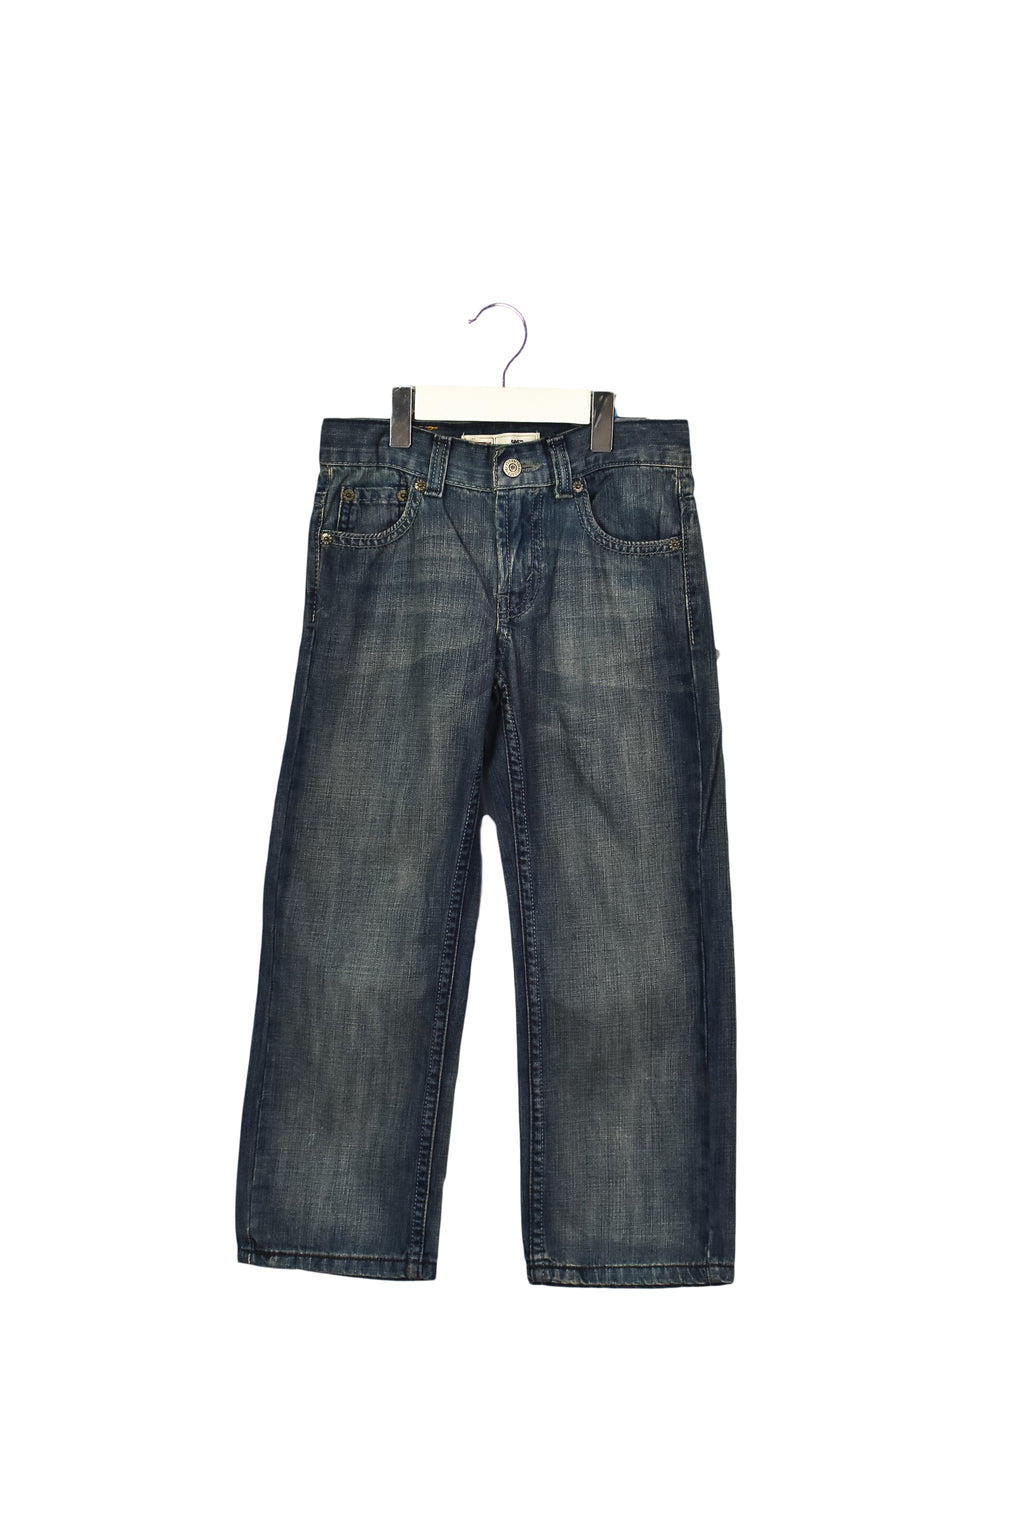 10035239 Levi's Kids~Jeans 5-6T at Retykle